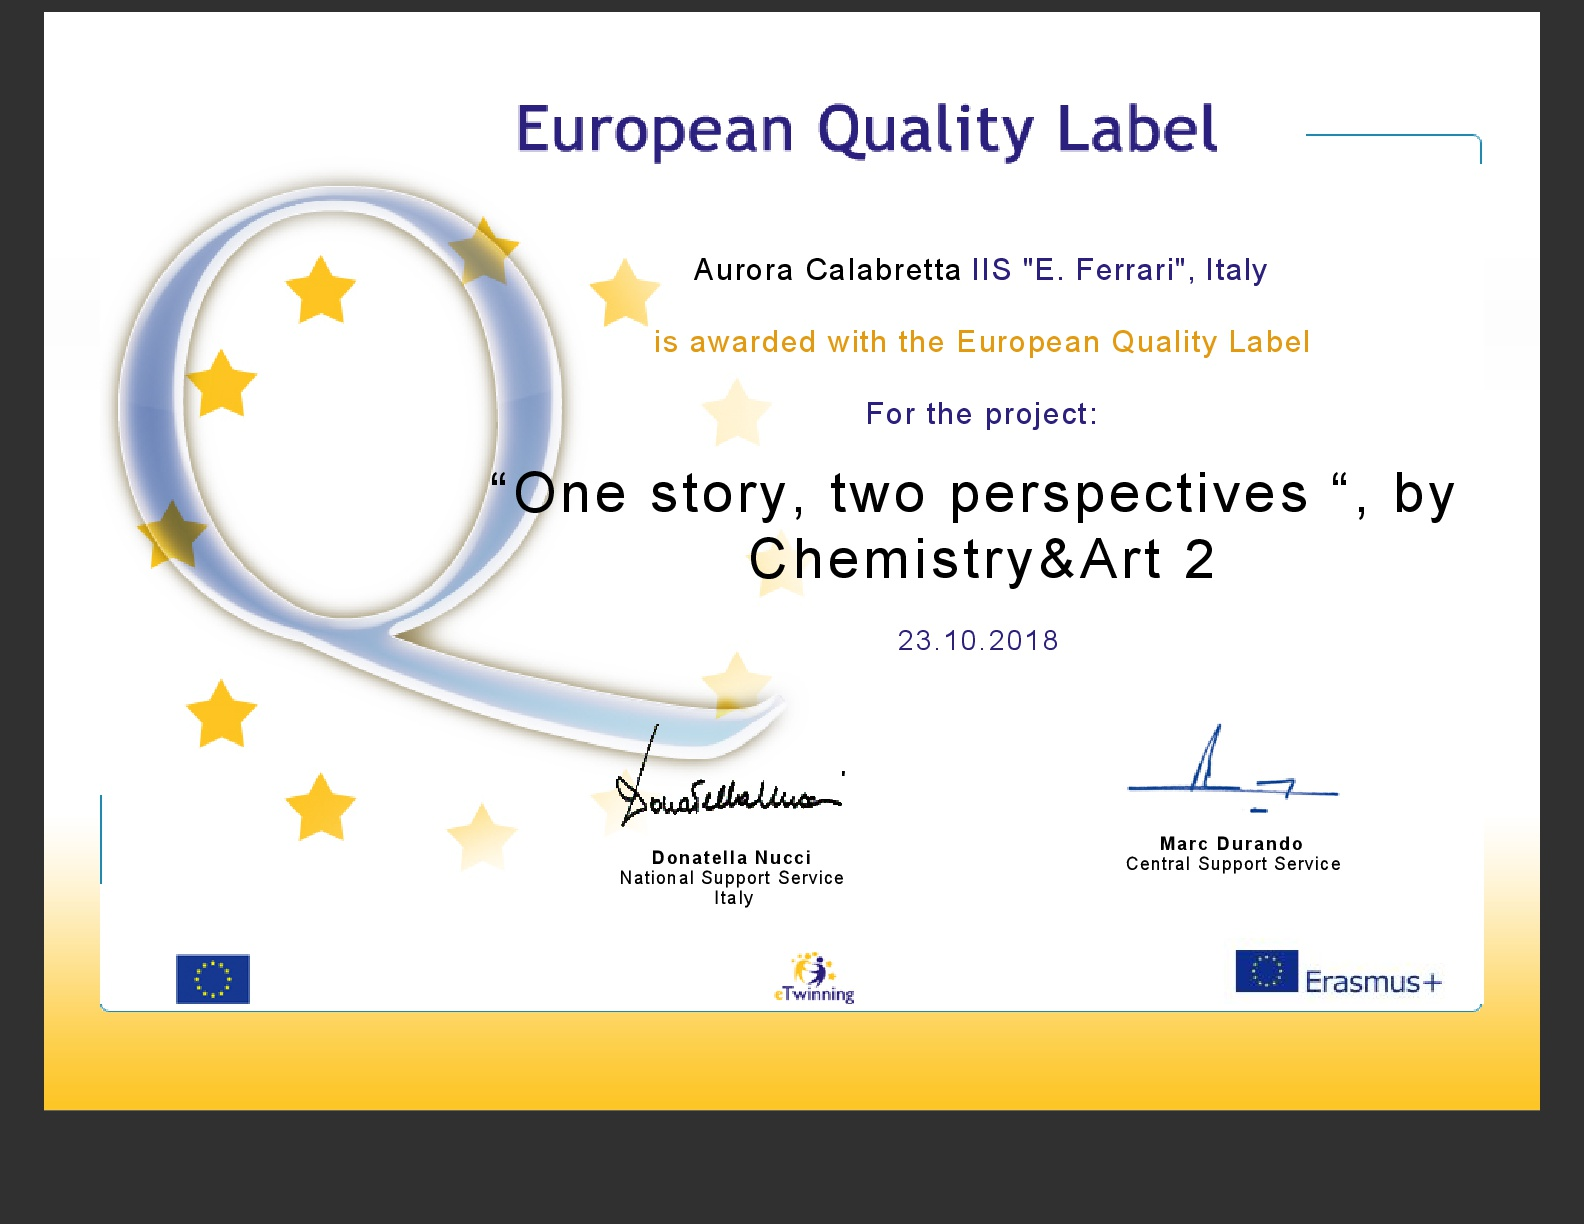 europeanqualitylabel Calabretta 16 17 1-001